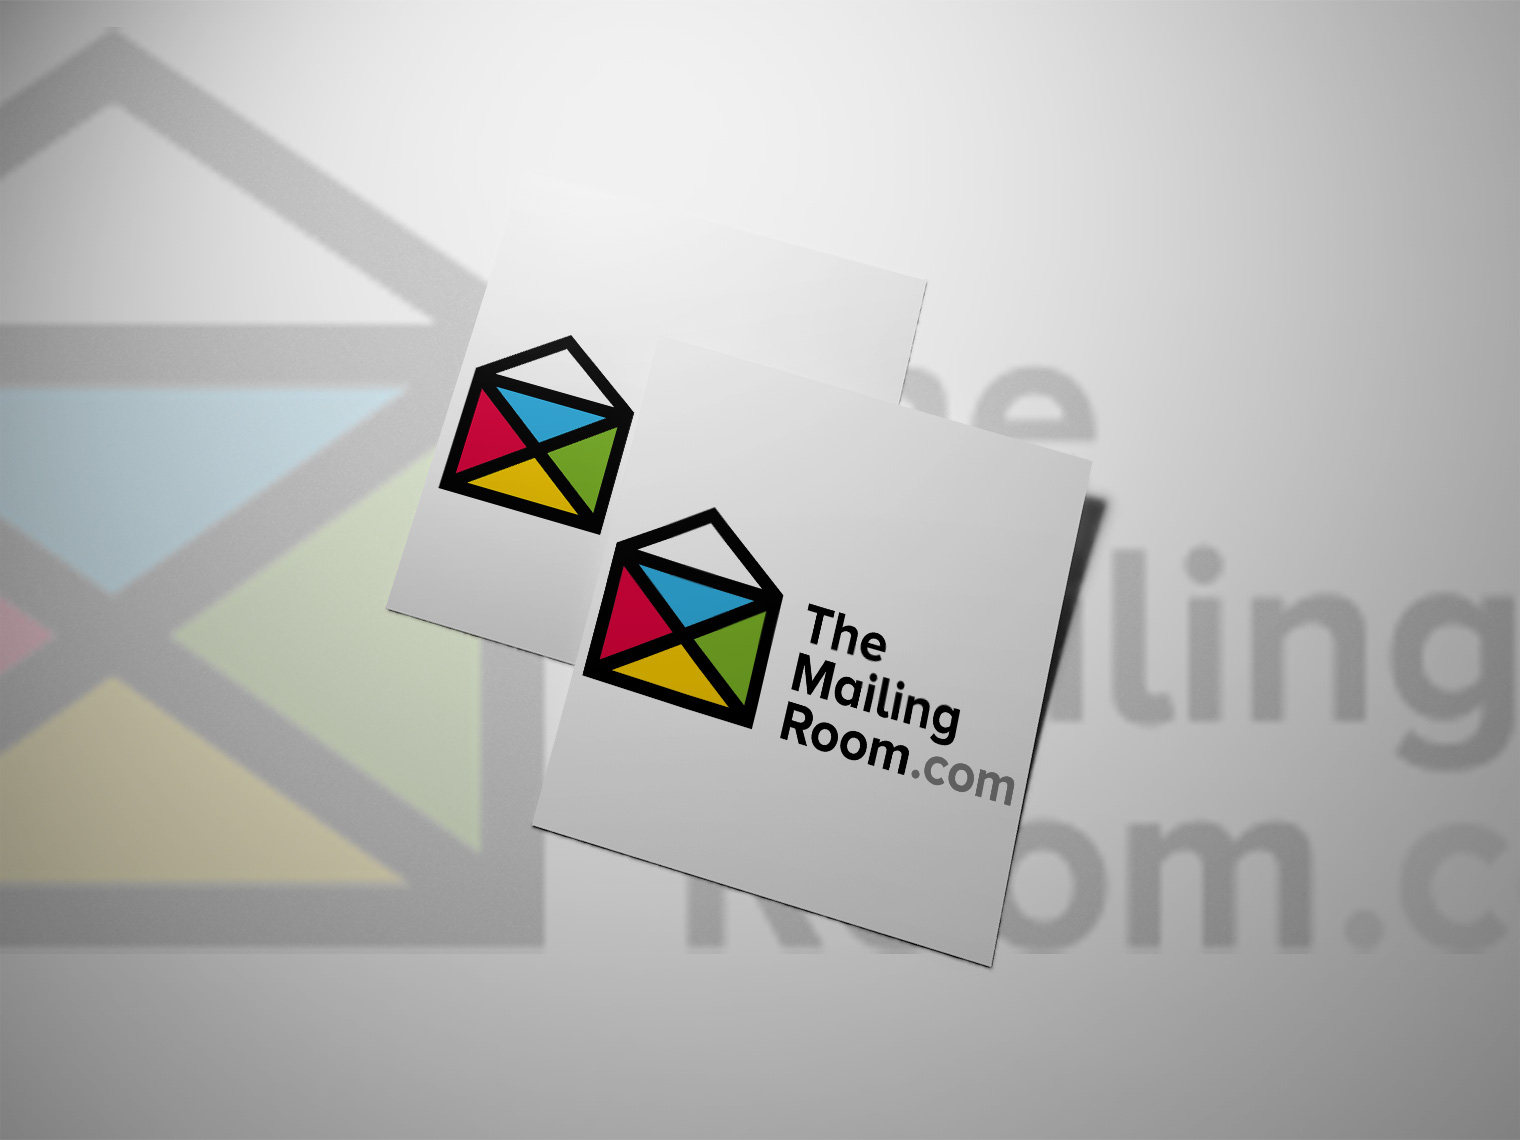 An image of two pieces of white paper that have The Mailing Room logo on both papers